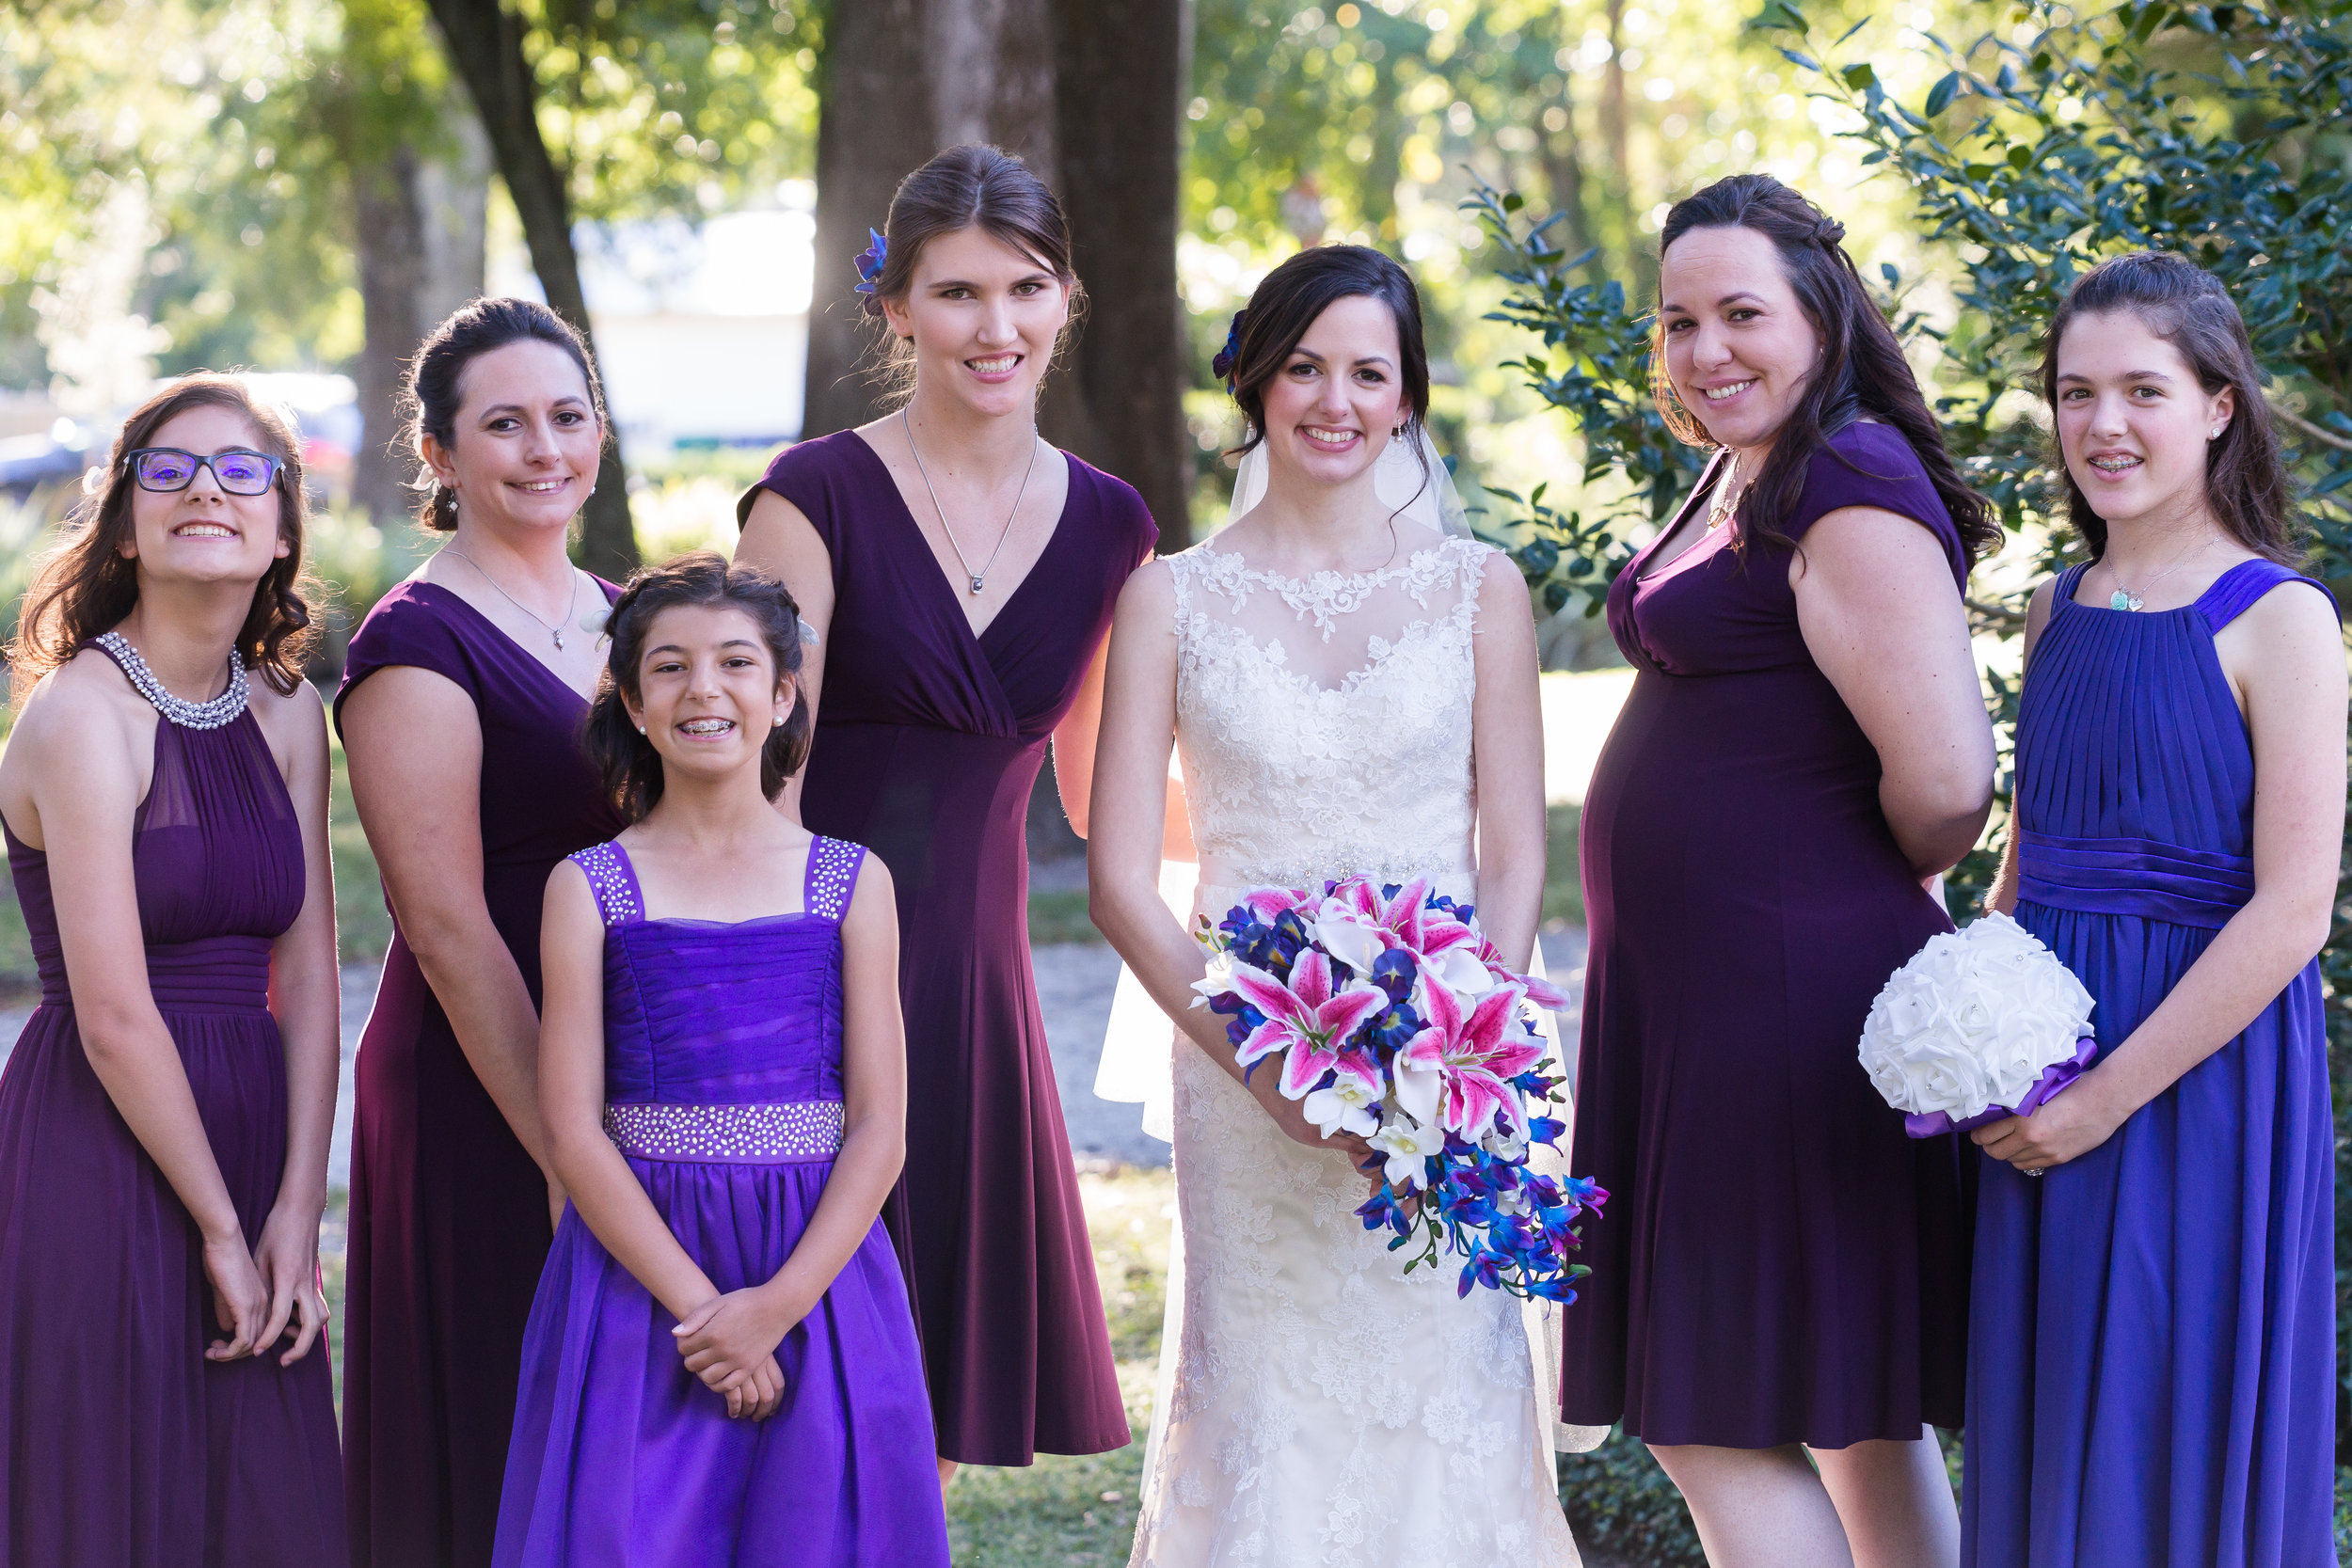 bridesmaids, brides, weddings, wedding photography